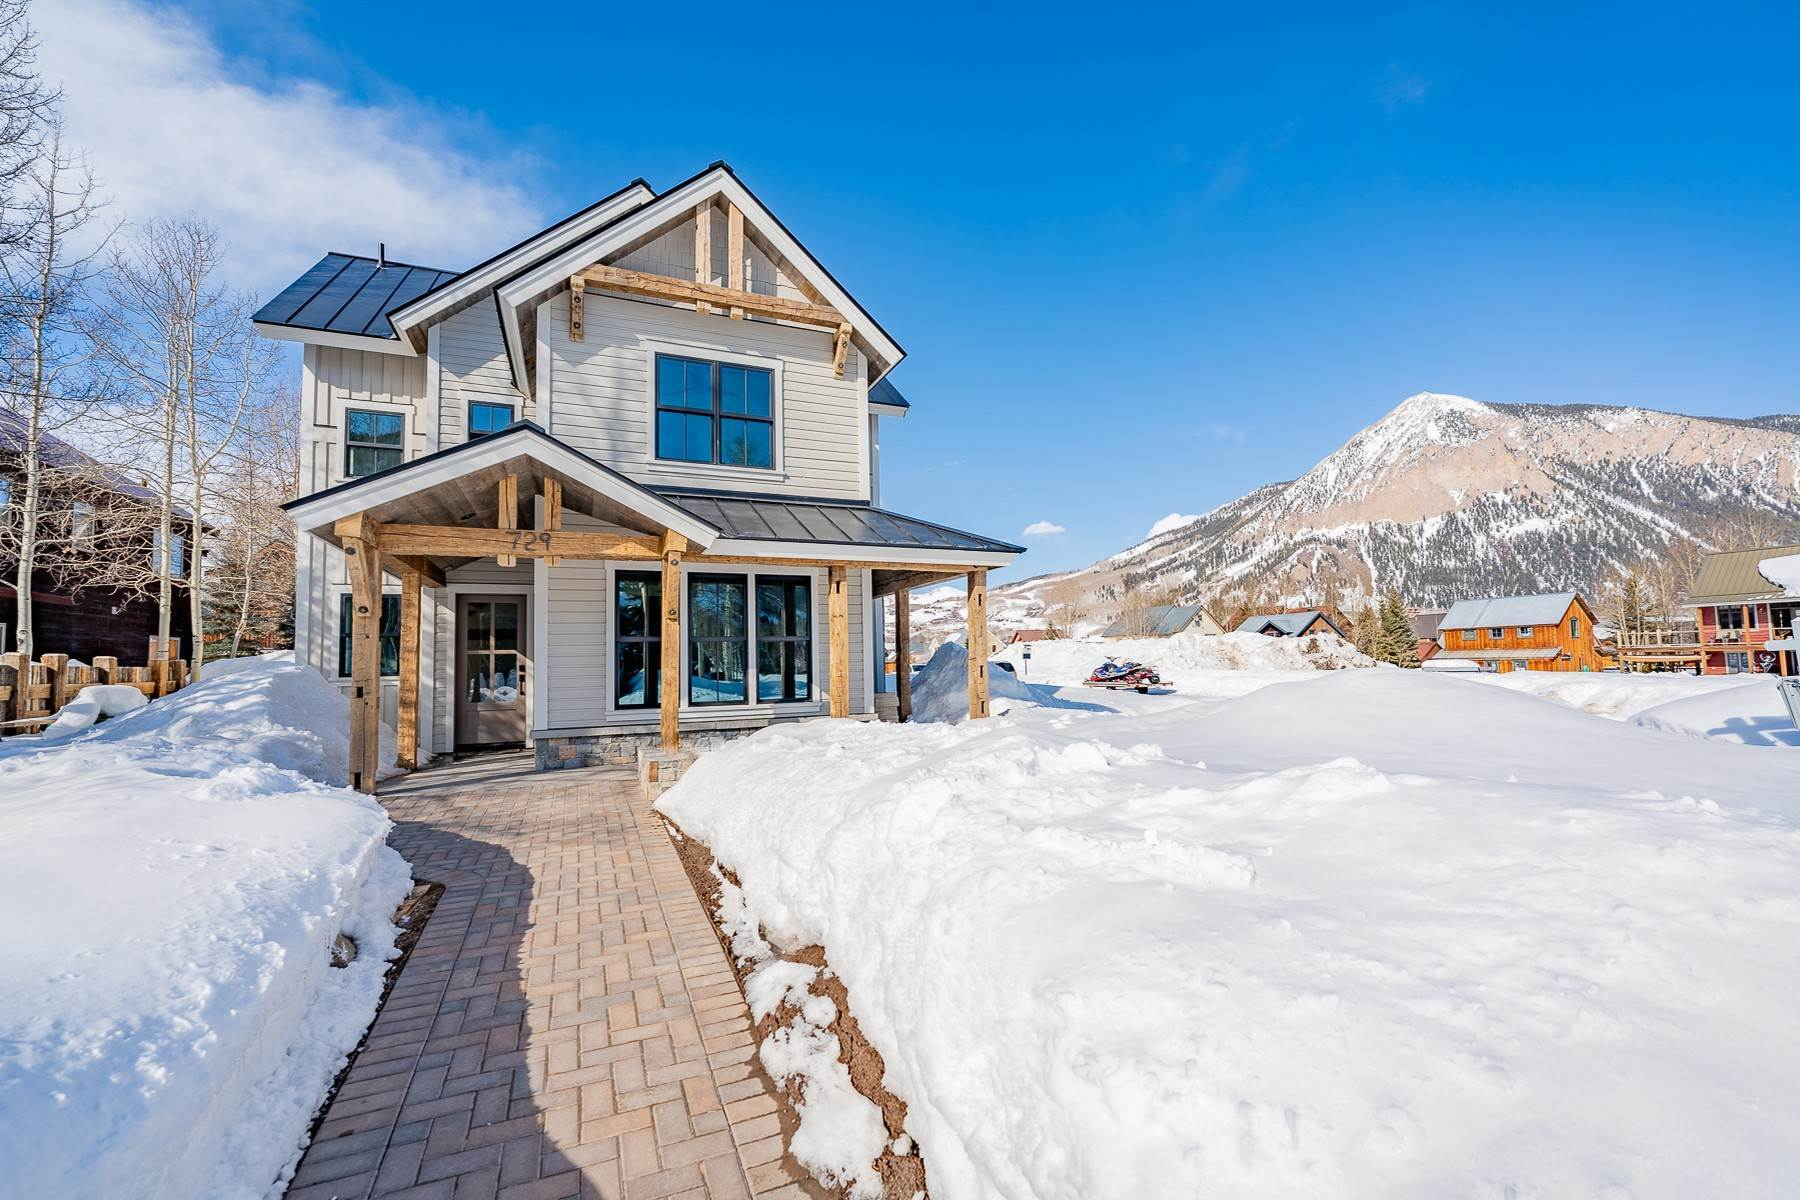 Property for Active at Outstanding New Five-Bedroom Home in Crested Butte 729 Whiterock Avenue Crested Butte, Colorado 81224 United States